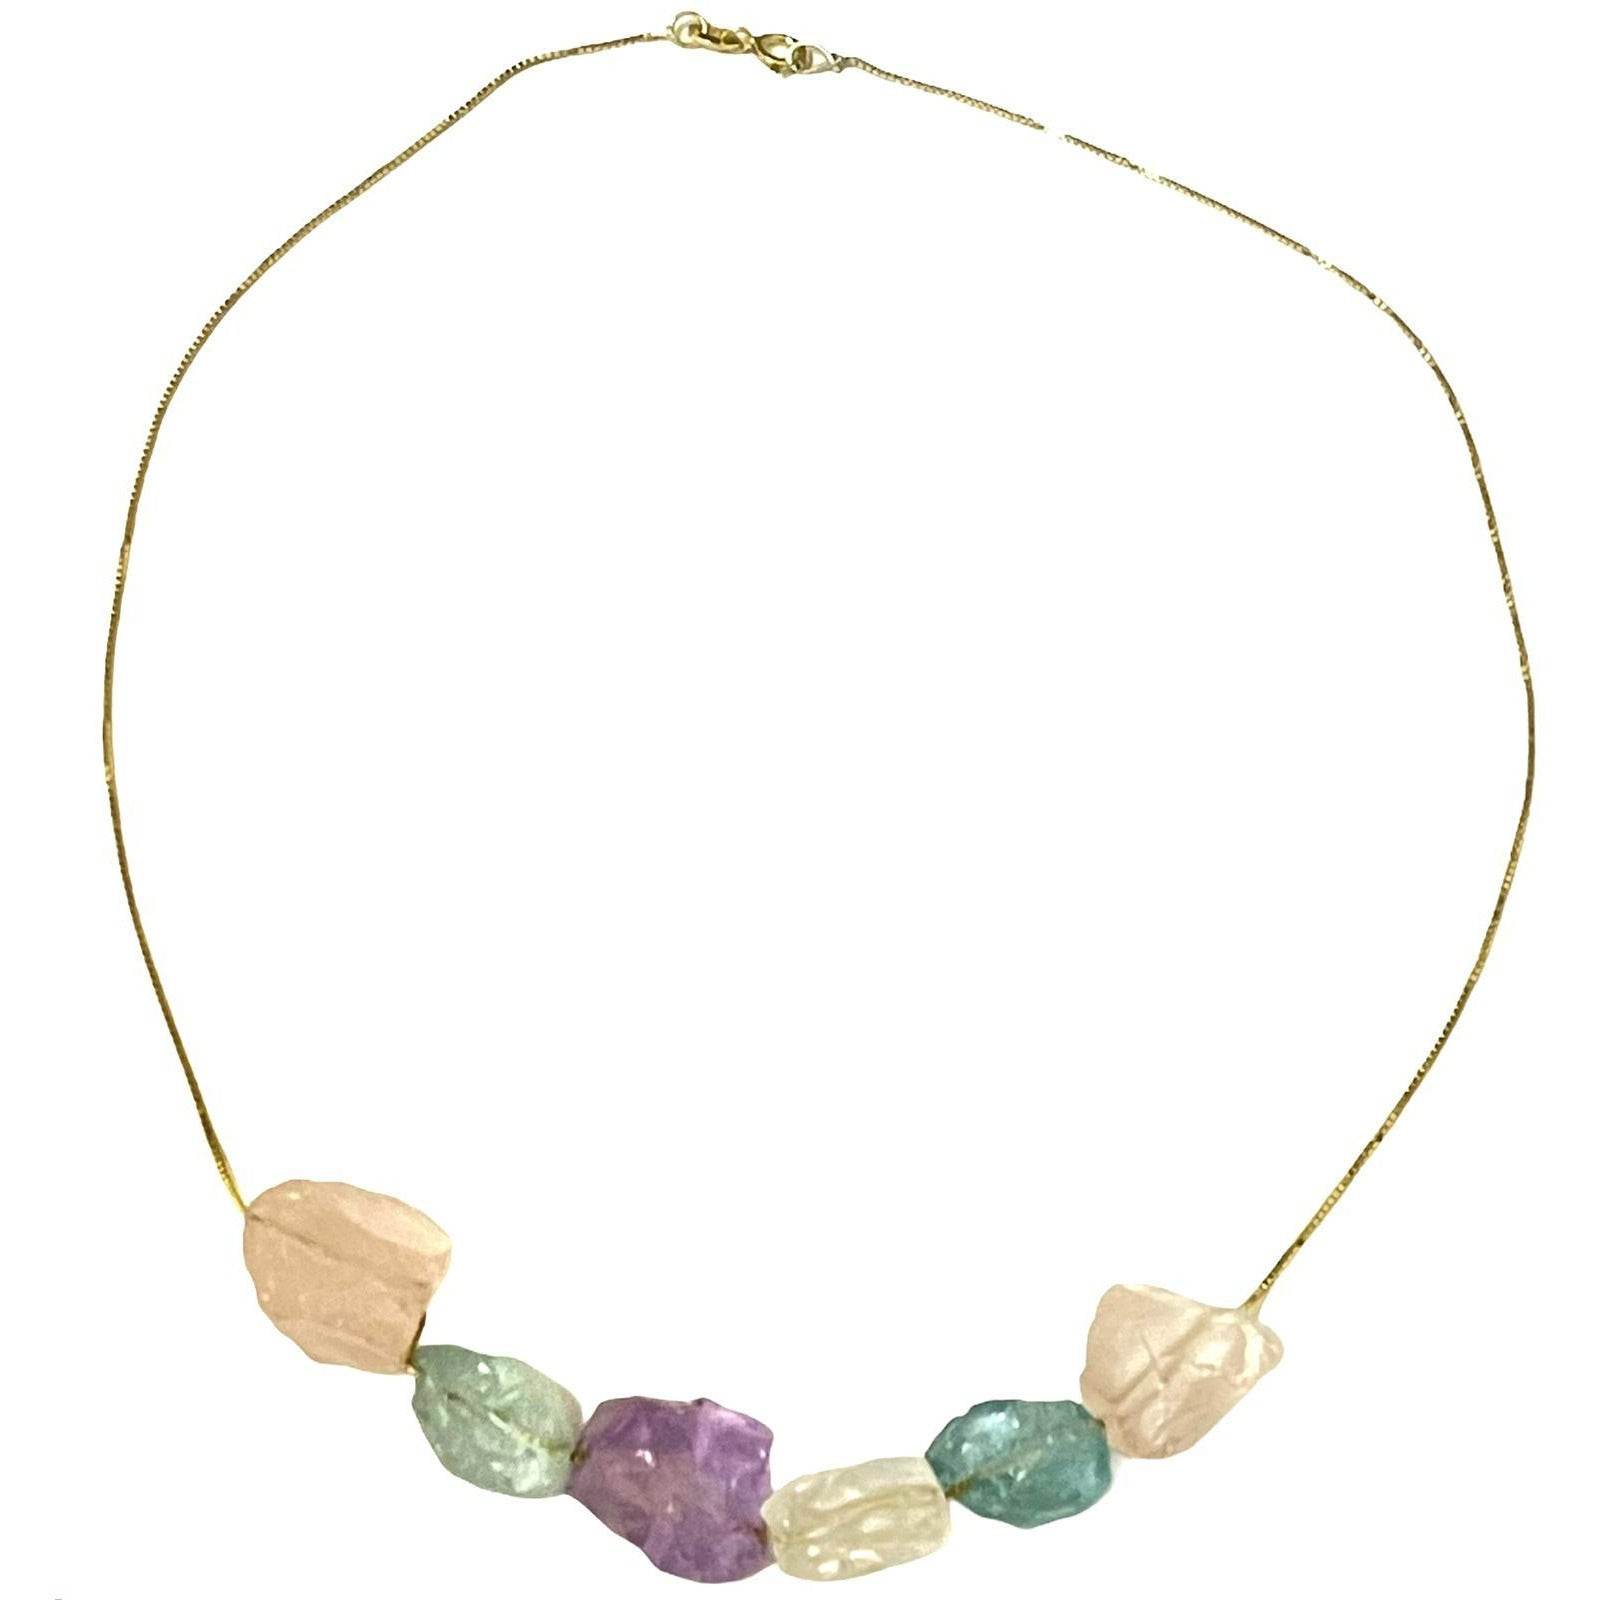 Elegant Crystal Necklace with rough raw stones gold plated over Silver, Made to order, 10 days lead time - natoorio